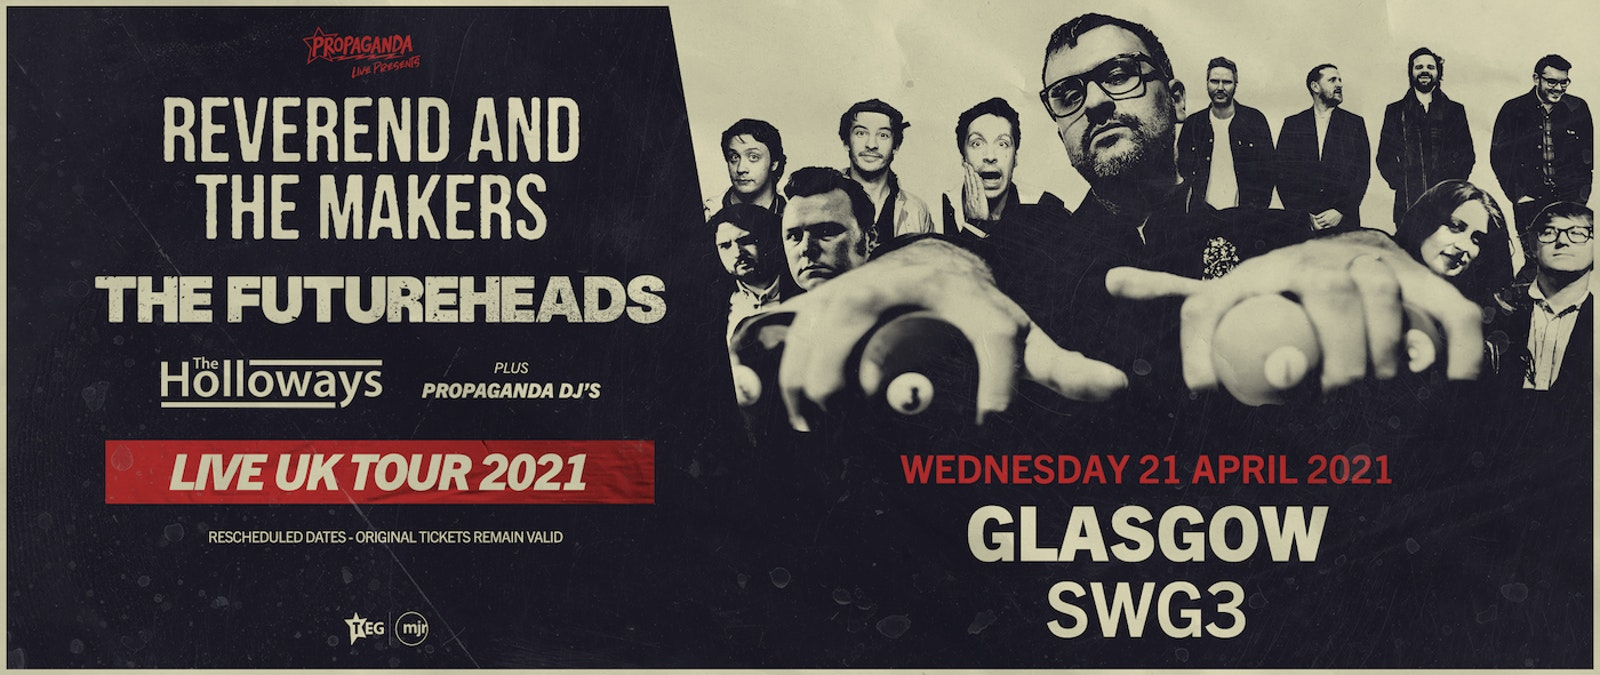 Propaganda Live Tour Featuring: Reverend and The Makers, The Futureheads & The Holloways